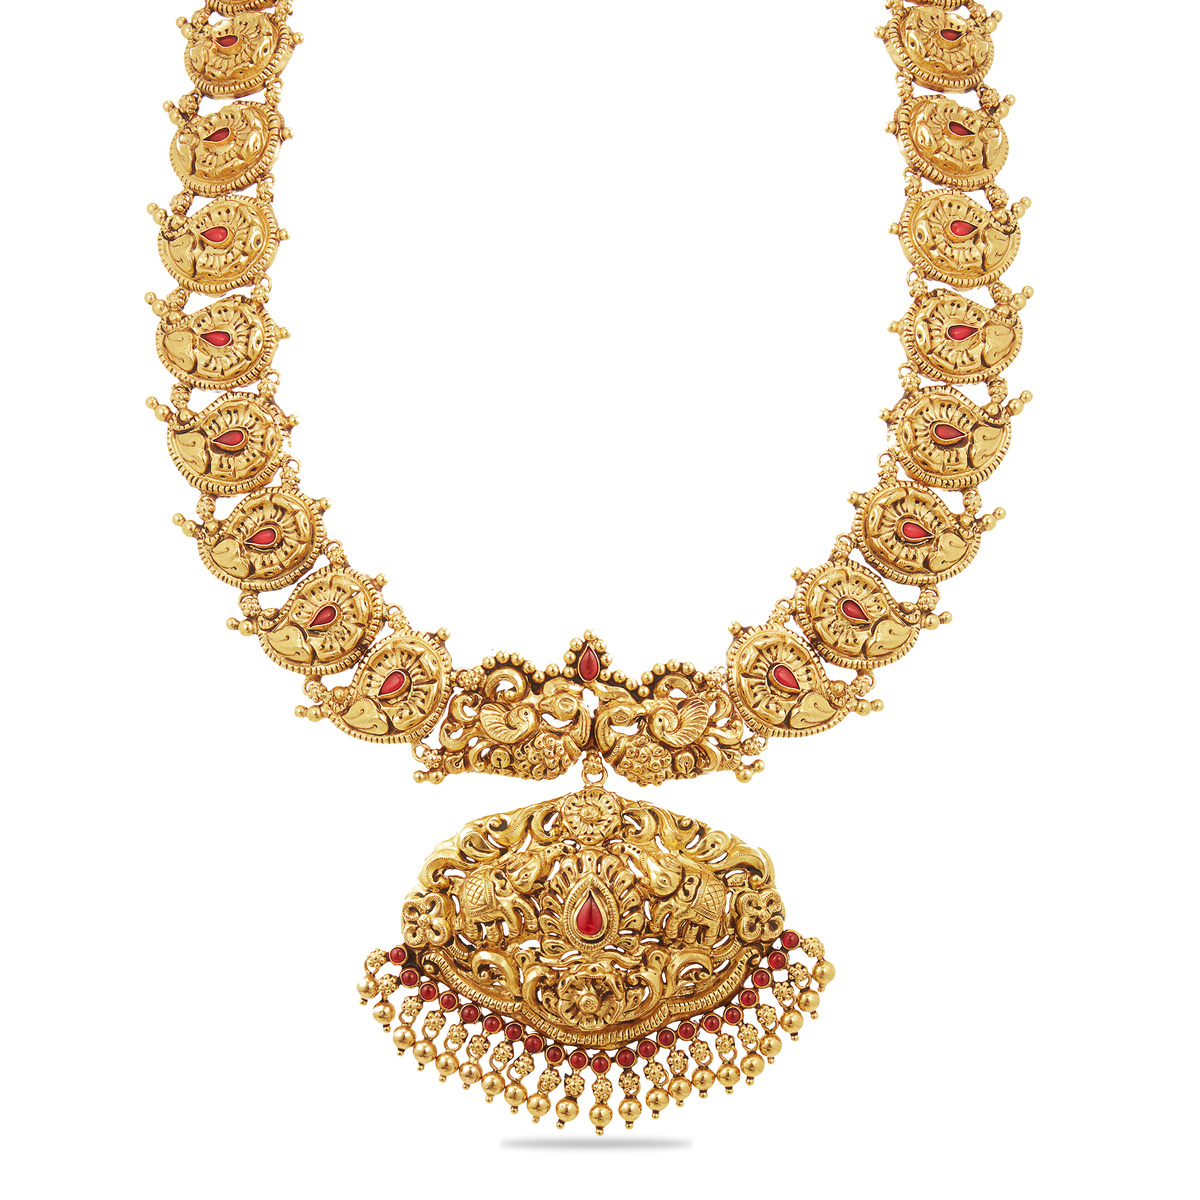 Pretty Necklace with Ethnic Motifs